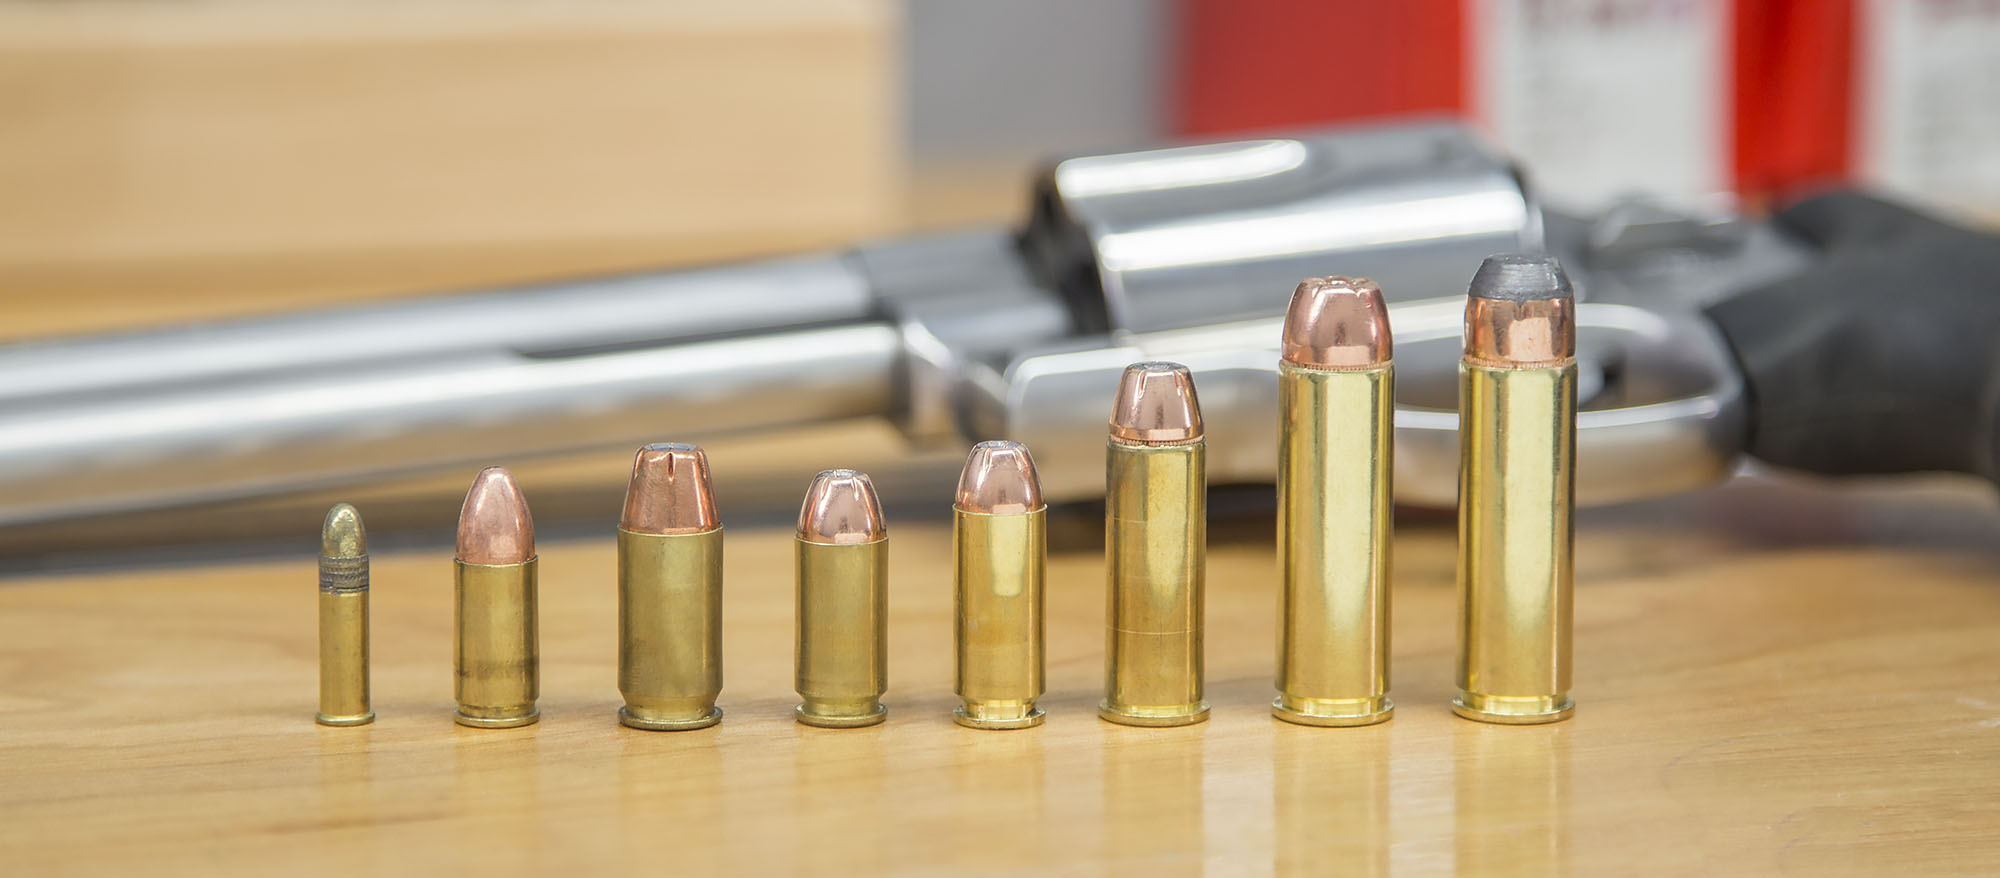 Second to None: Reloading and Shooting 500 S&W Magnum